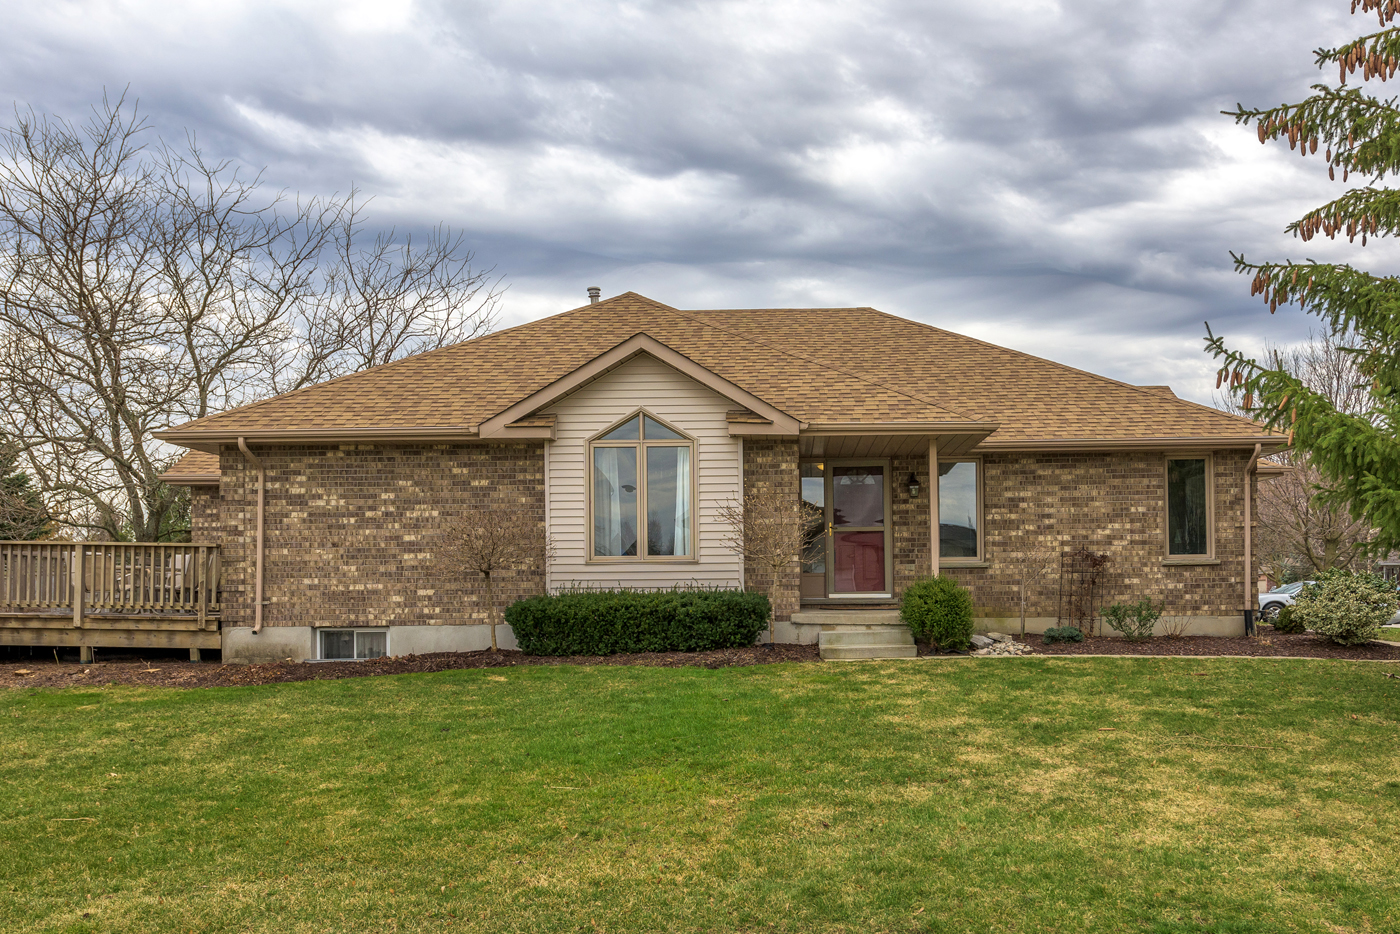 An Image Of A Home For Sale In Dorchester, ON - Wayne Jewell Sutton Diamond Realty